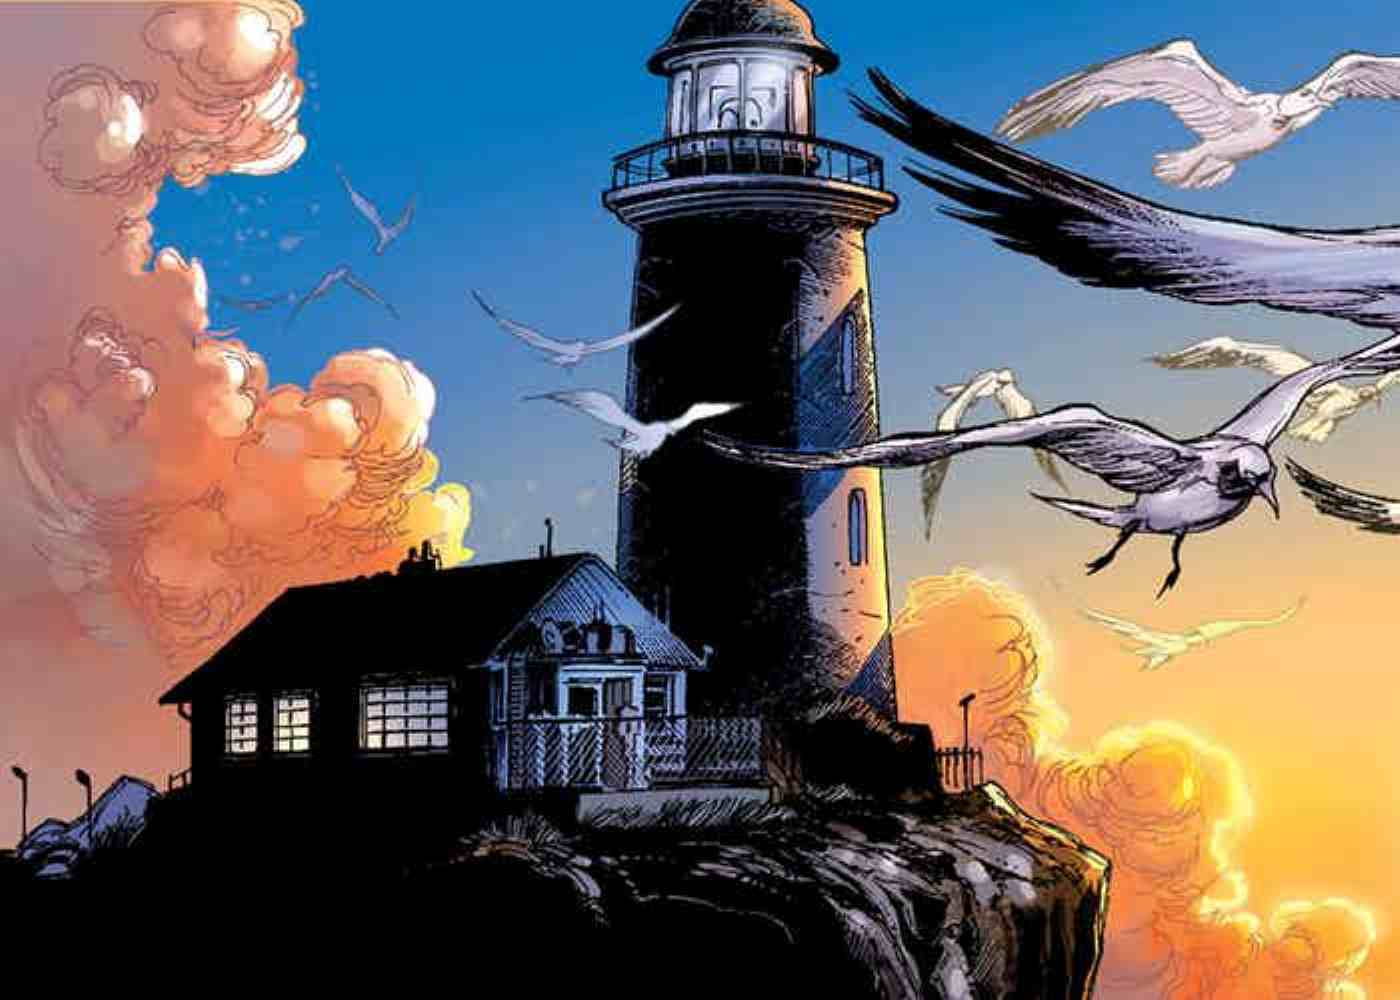 James Wan Gives a Preview of Aquaman's Lighthouse